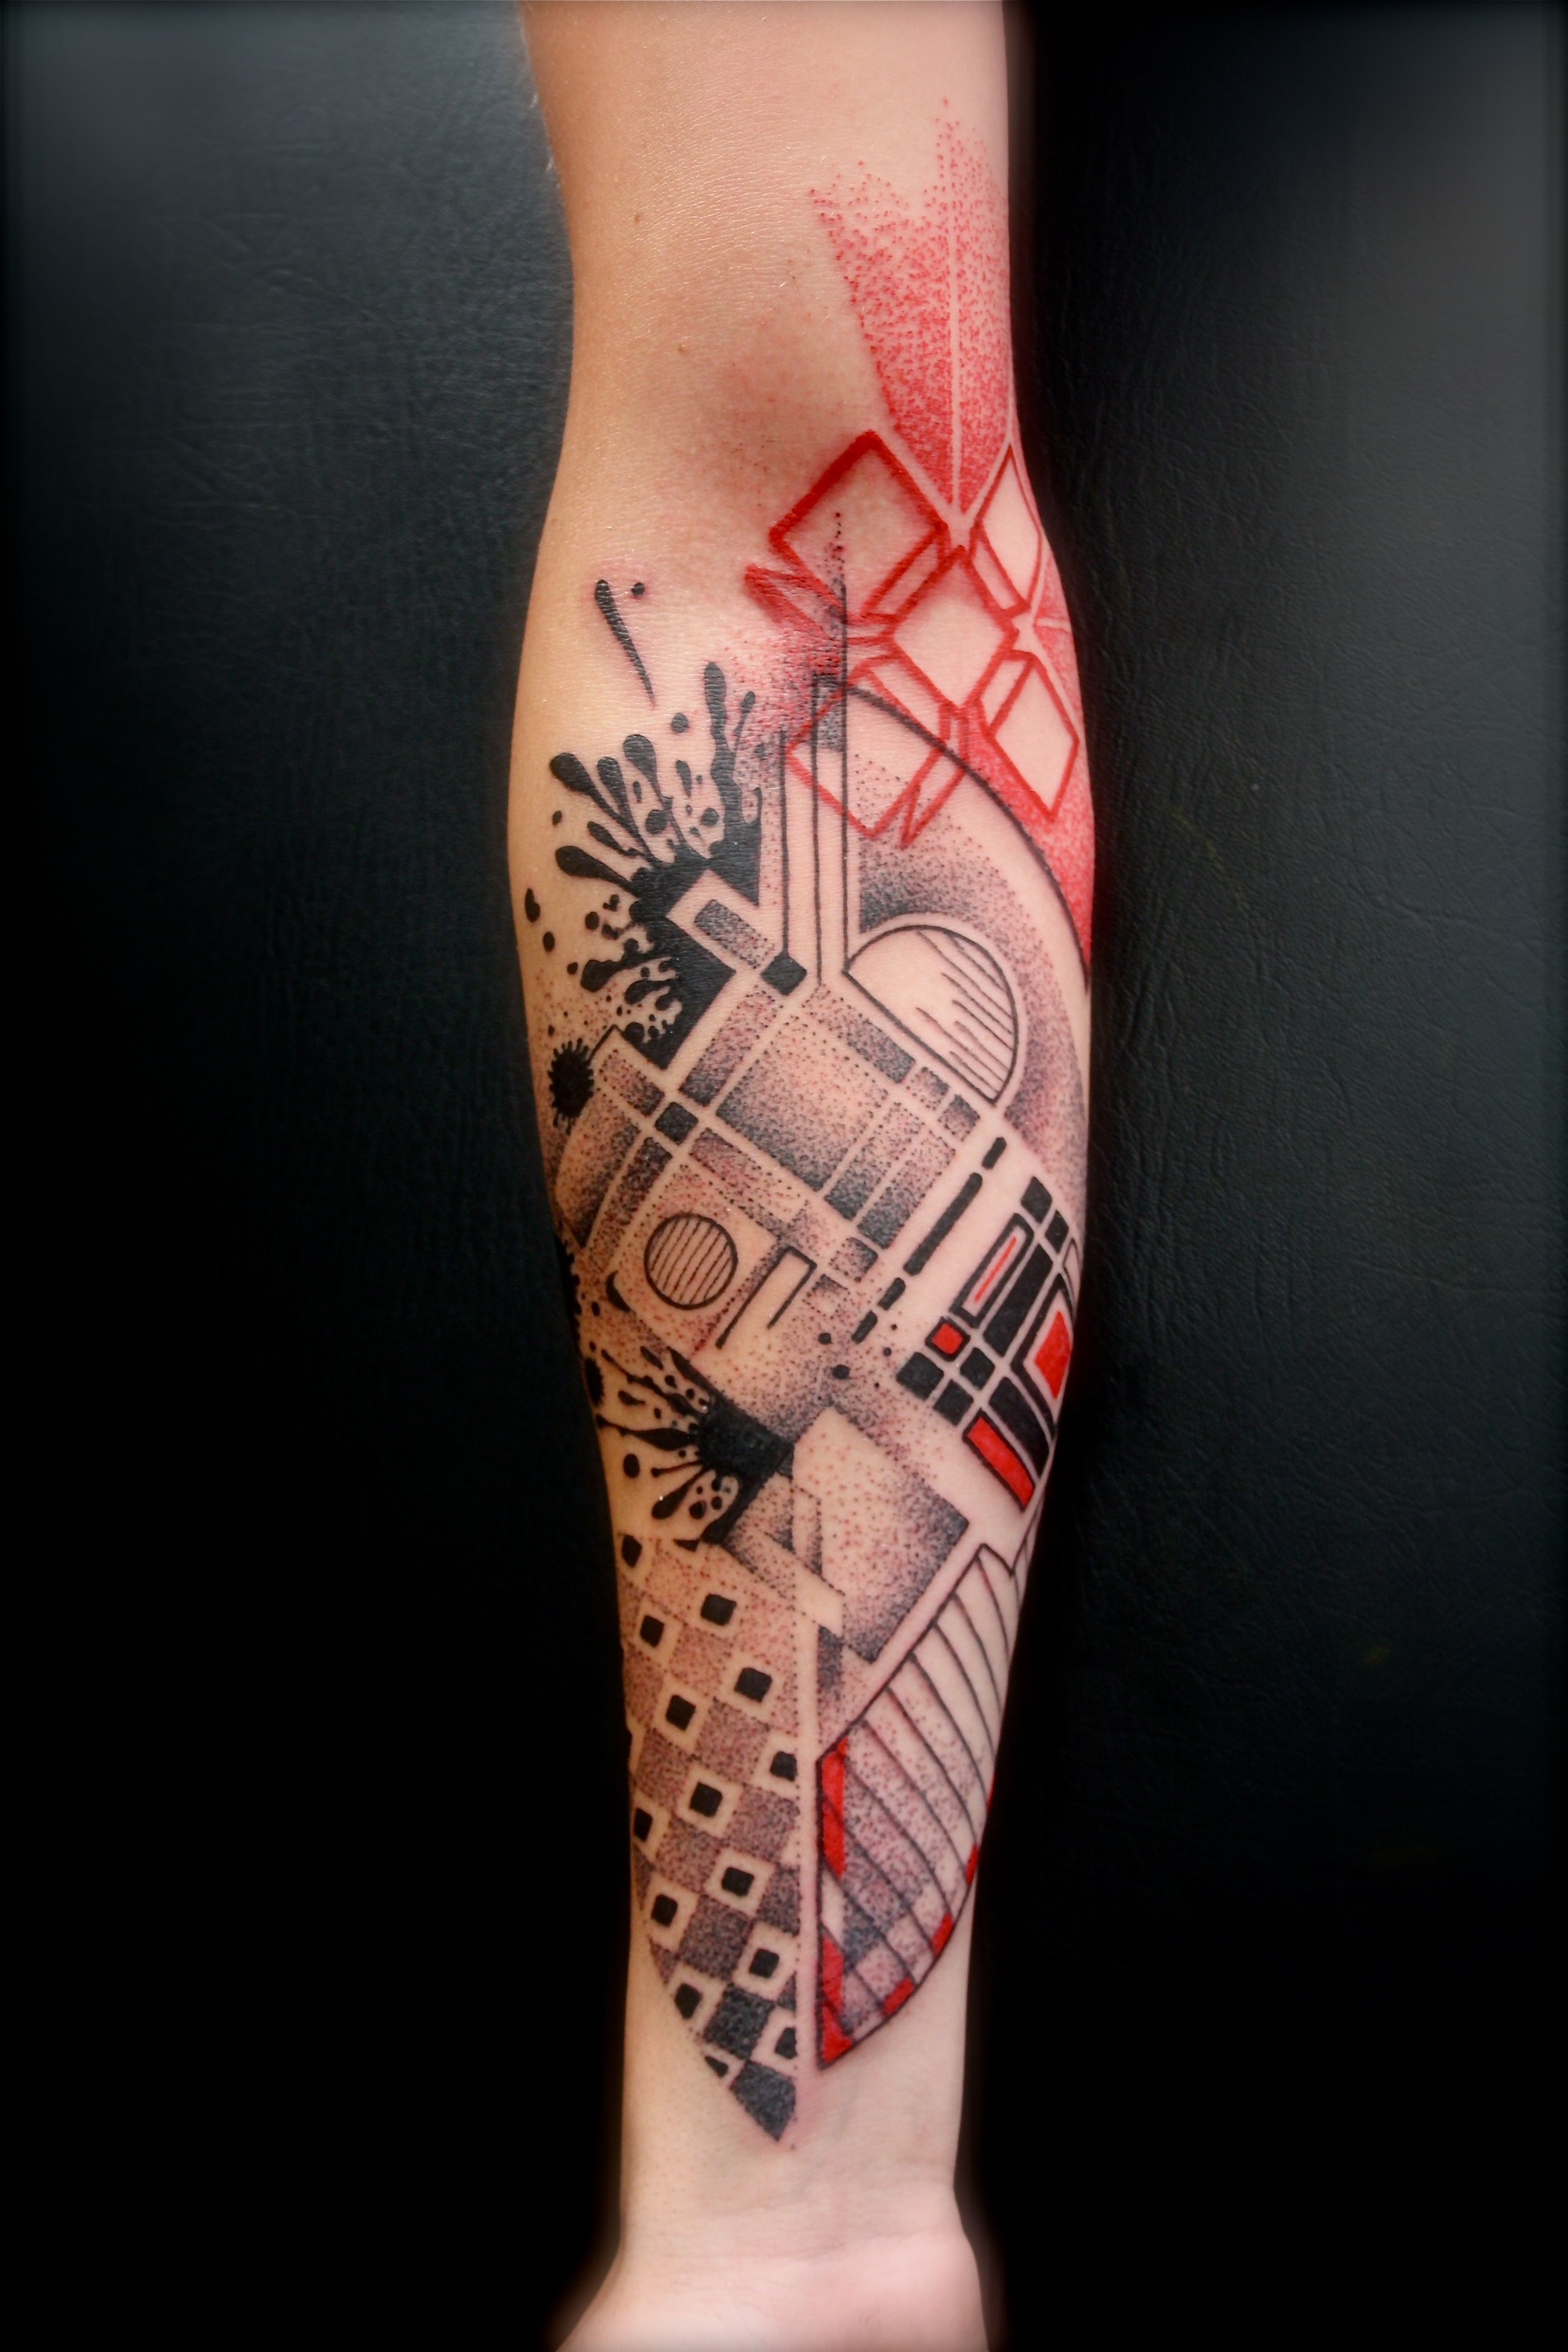 Pascal scaillet sky l 39 art du point tatoo pinterest tatouages id es de - Idee tatouage avant bras homme ...